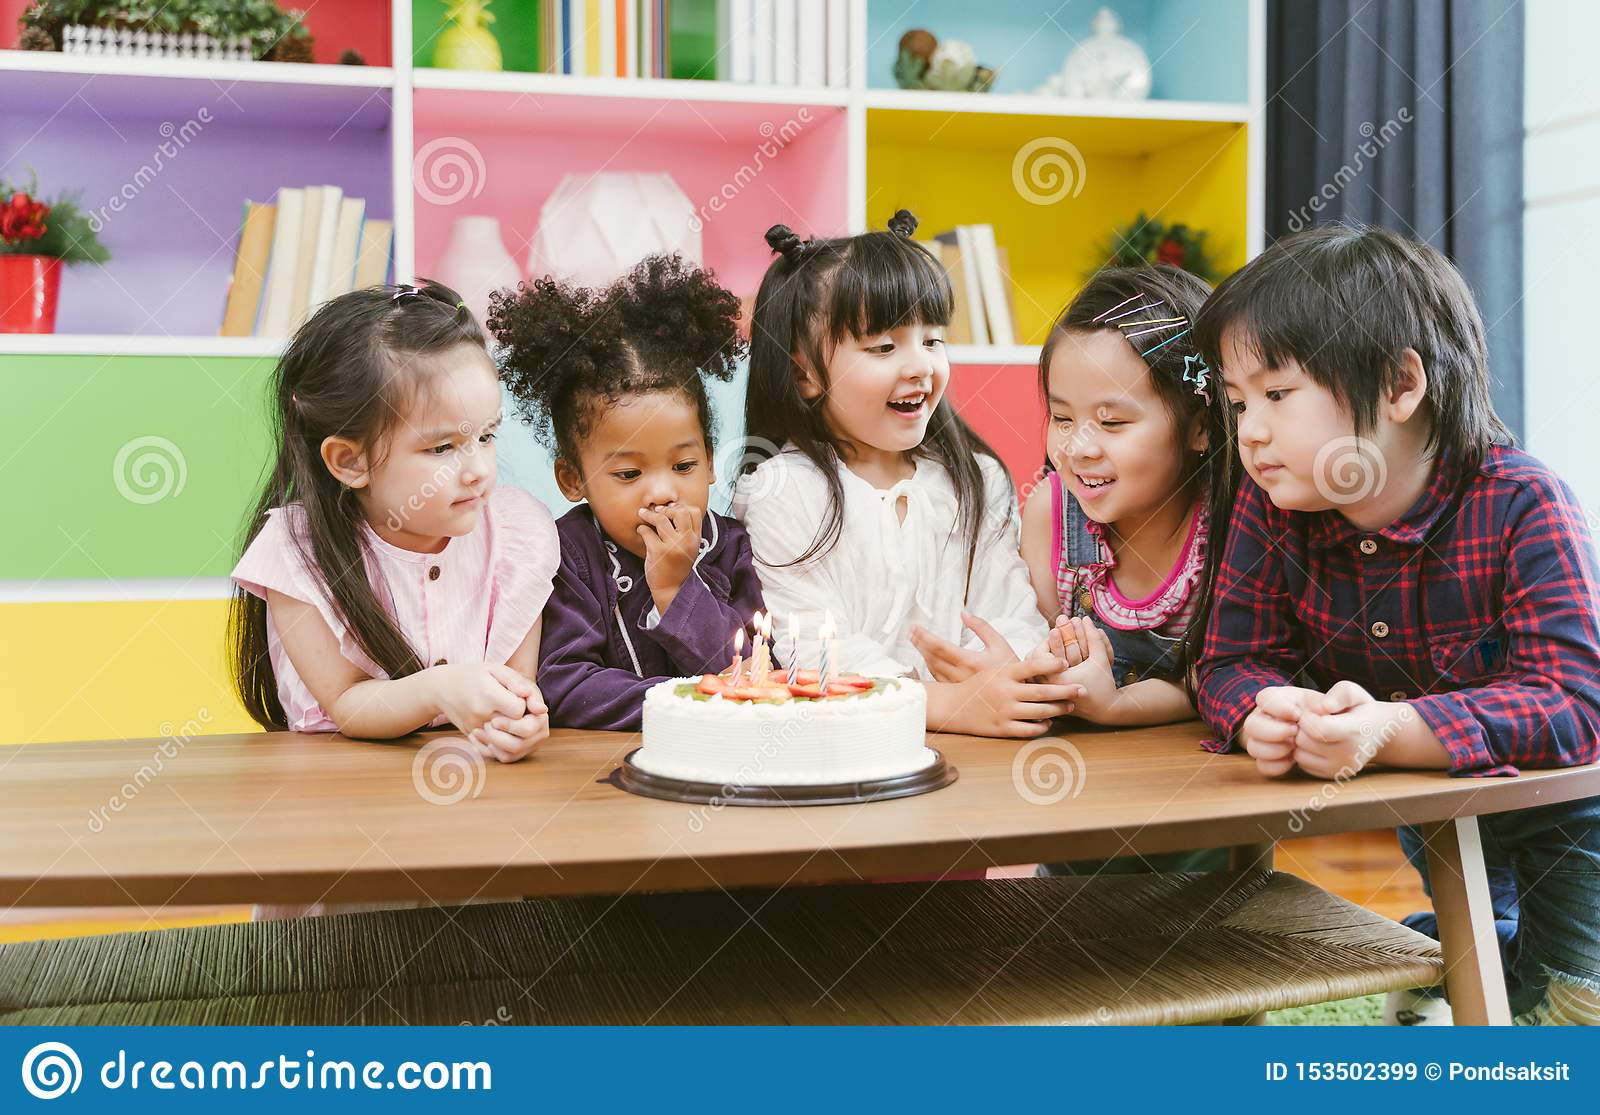 Group of kids enjoying a birthday party blowing out the candle on cake.